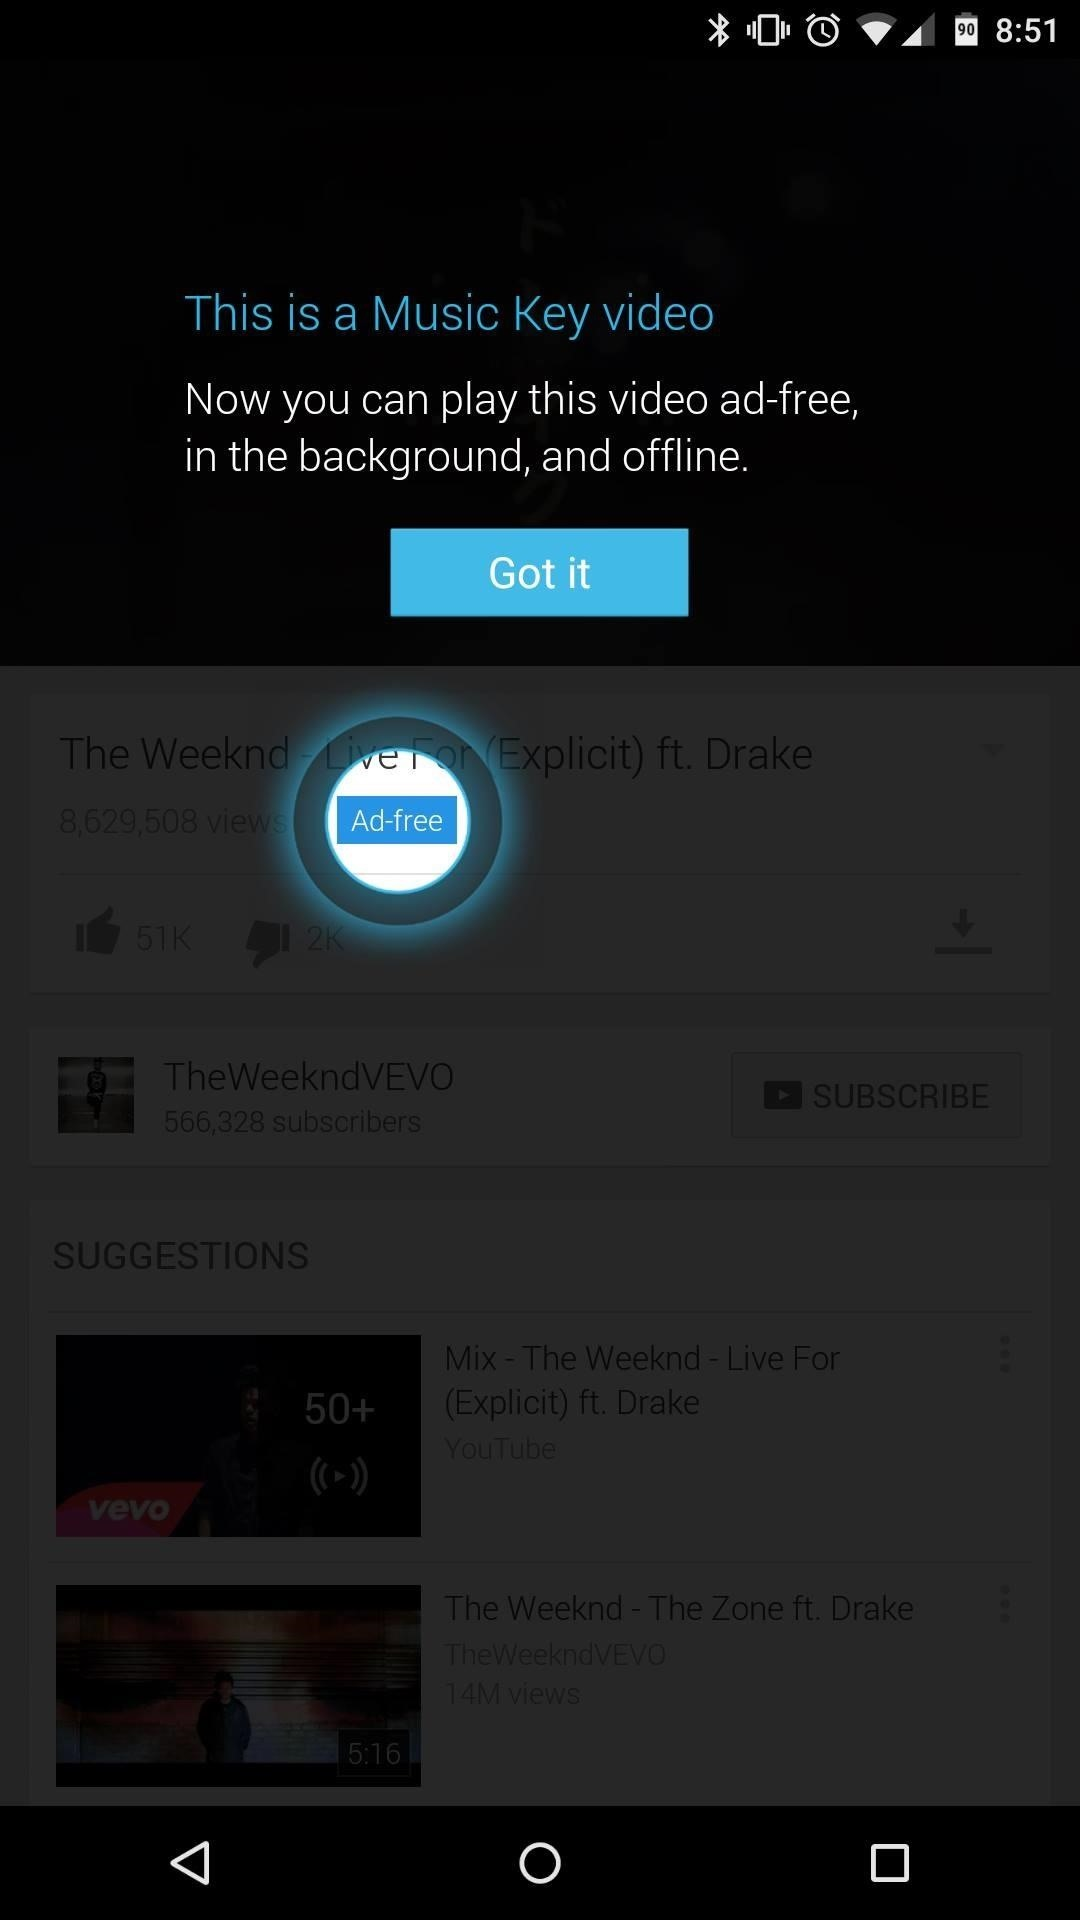 YouTube Music Key Is Live: How to Enable Background Playback, Download Tracks, & More